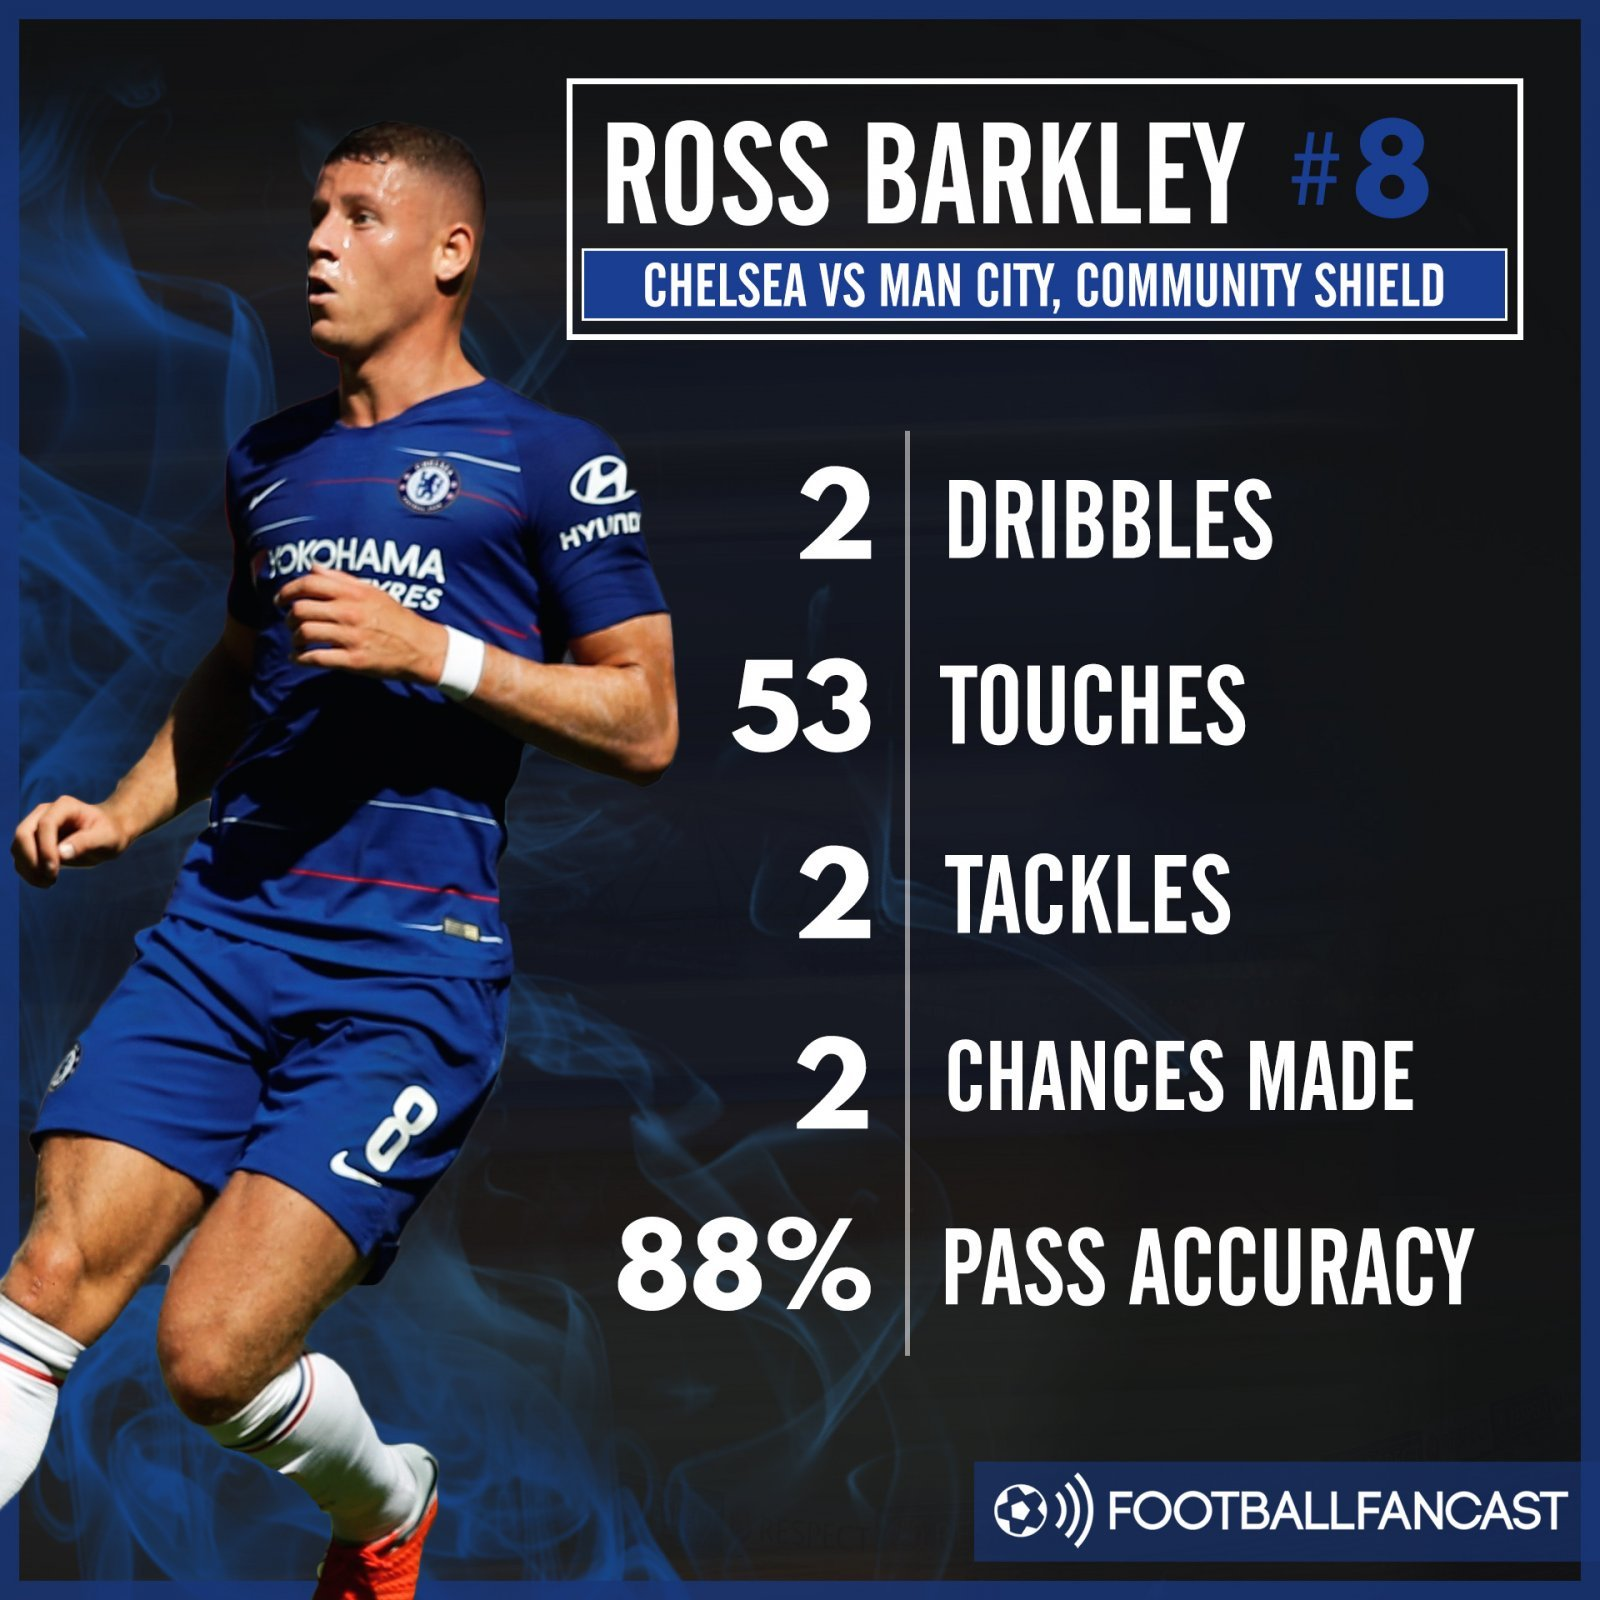 Ross Barkley's stats from Community Shield